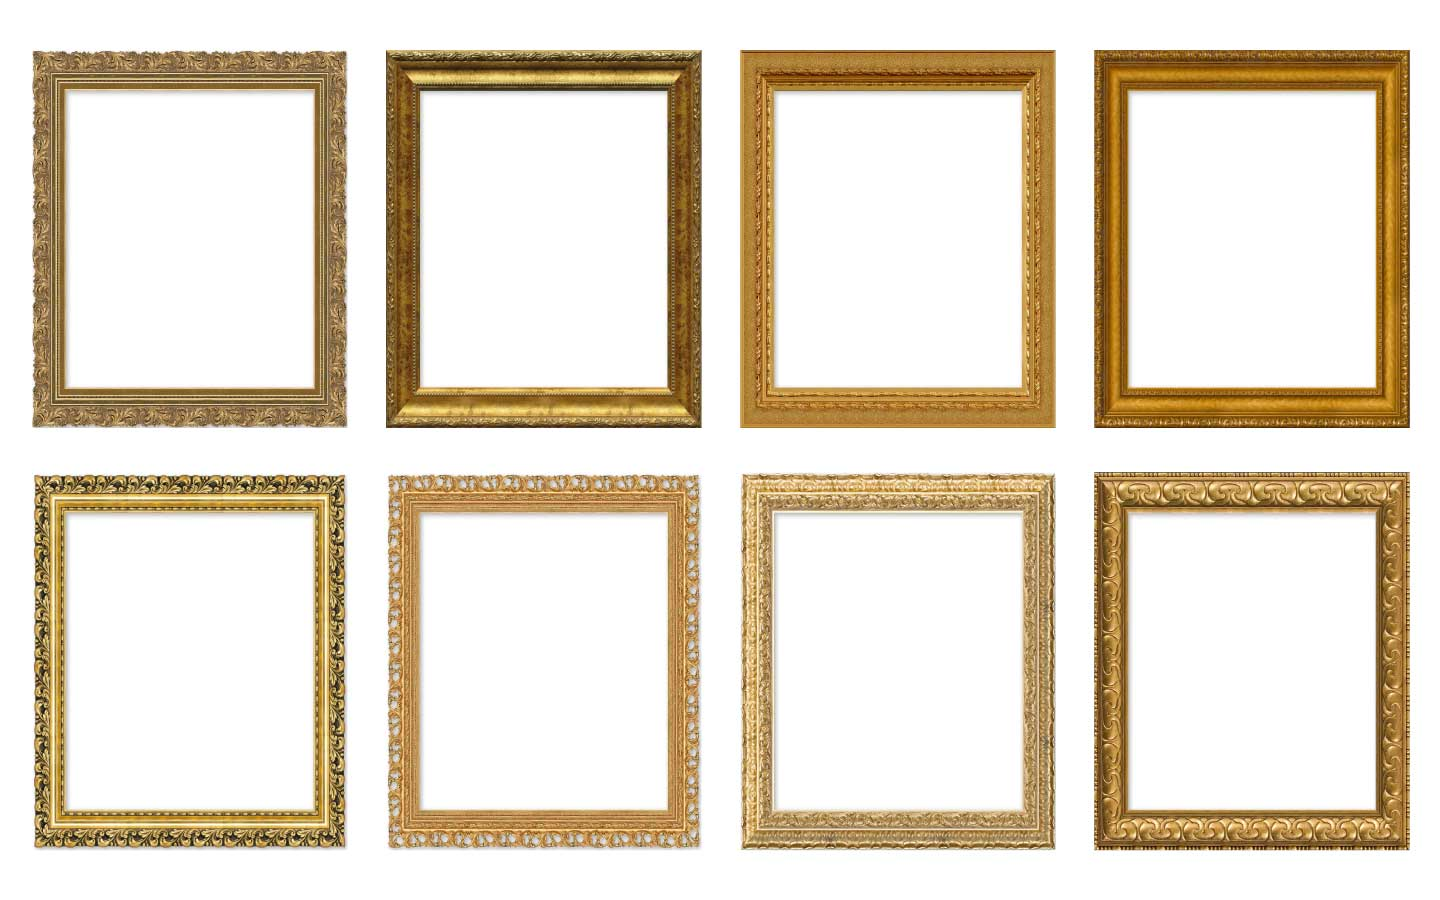 Gold frames in classic paintings and modern art